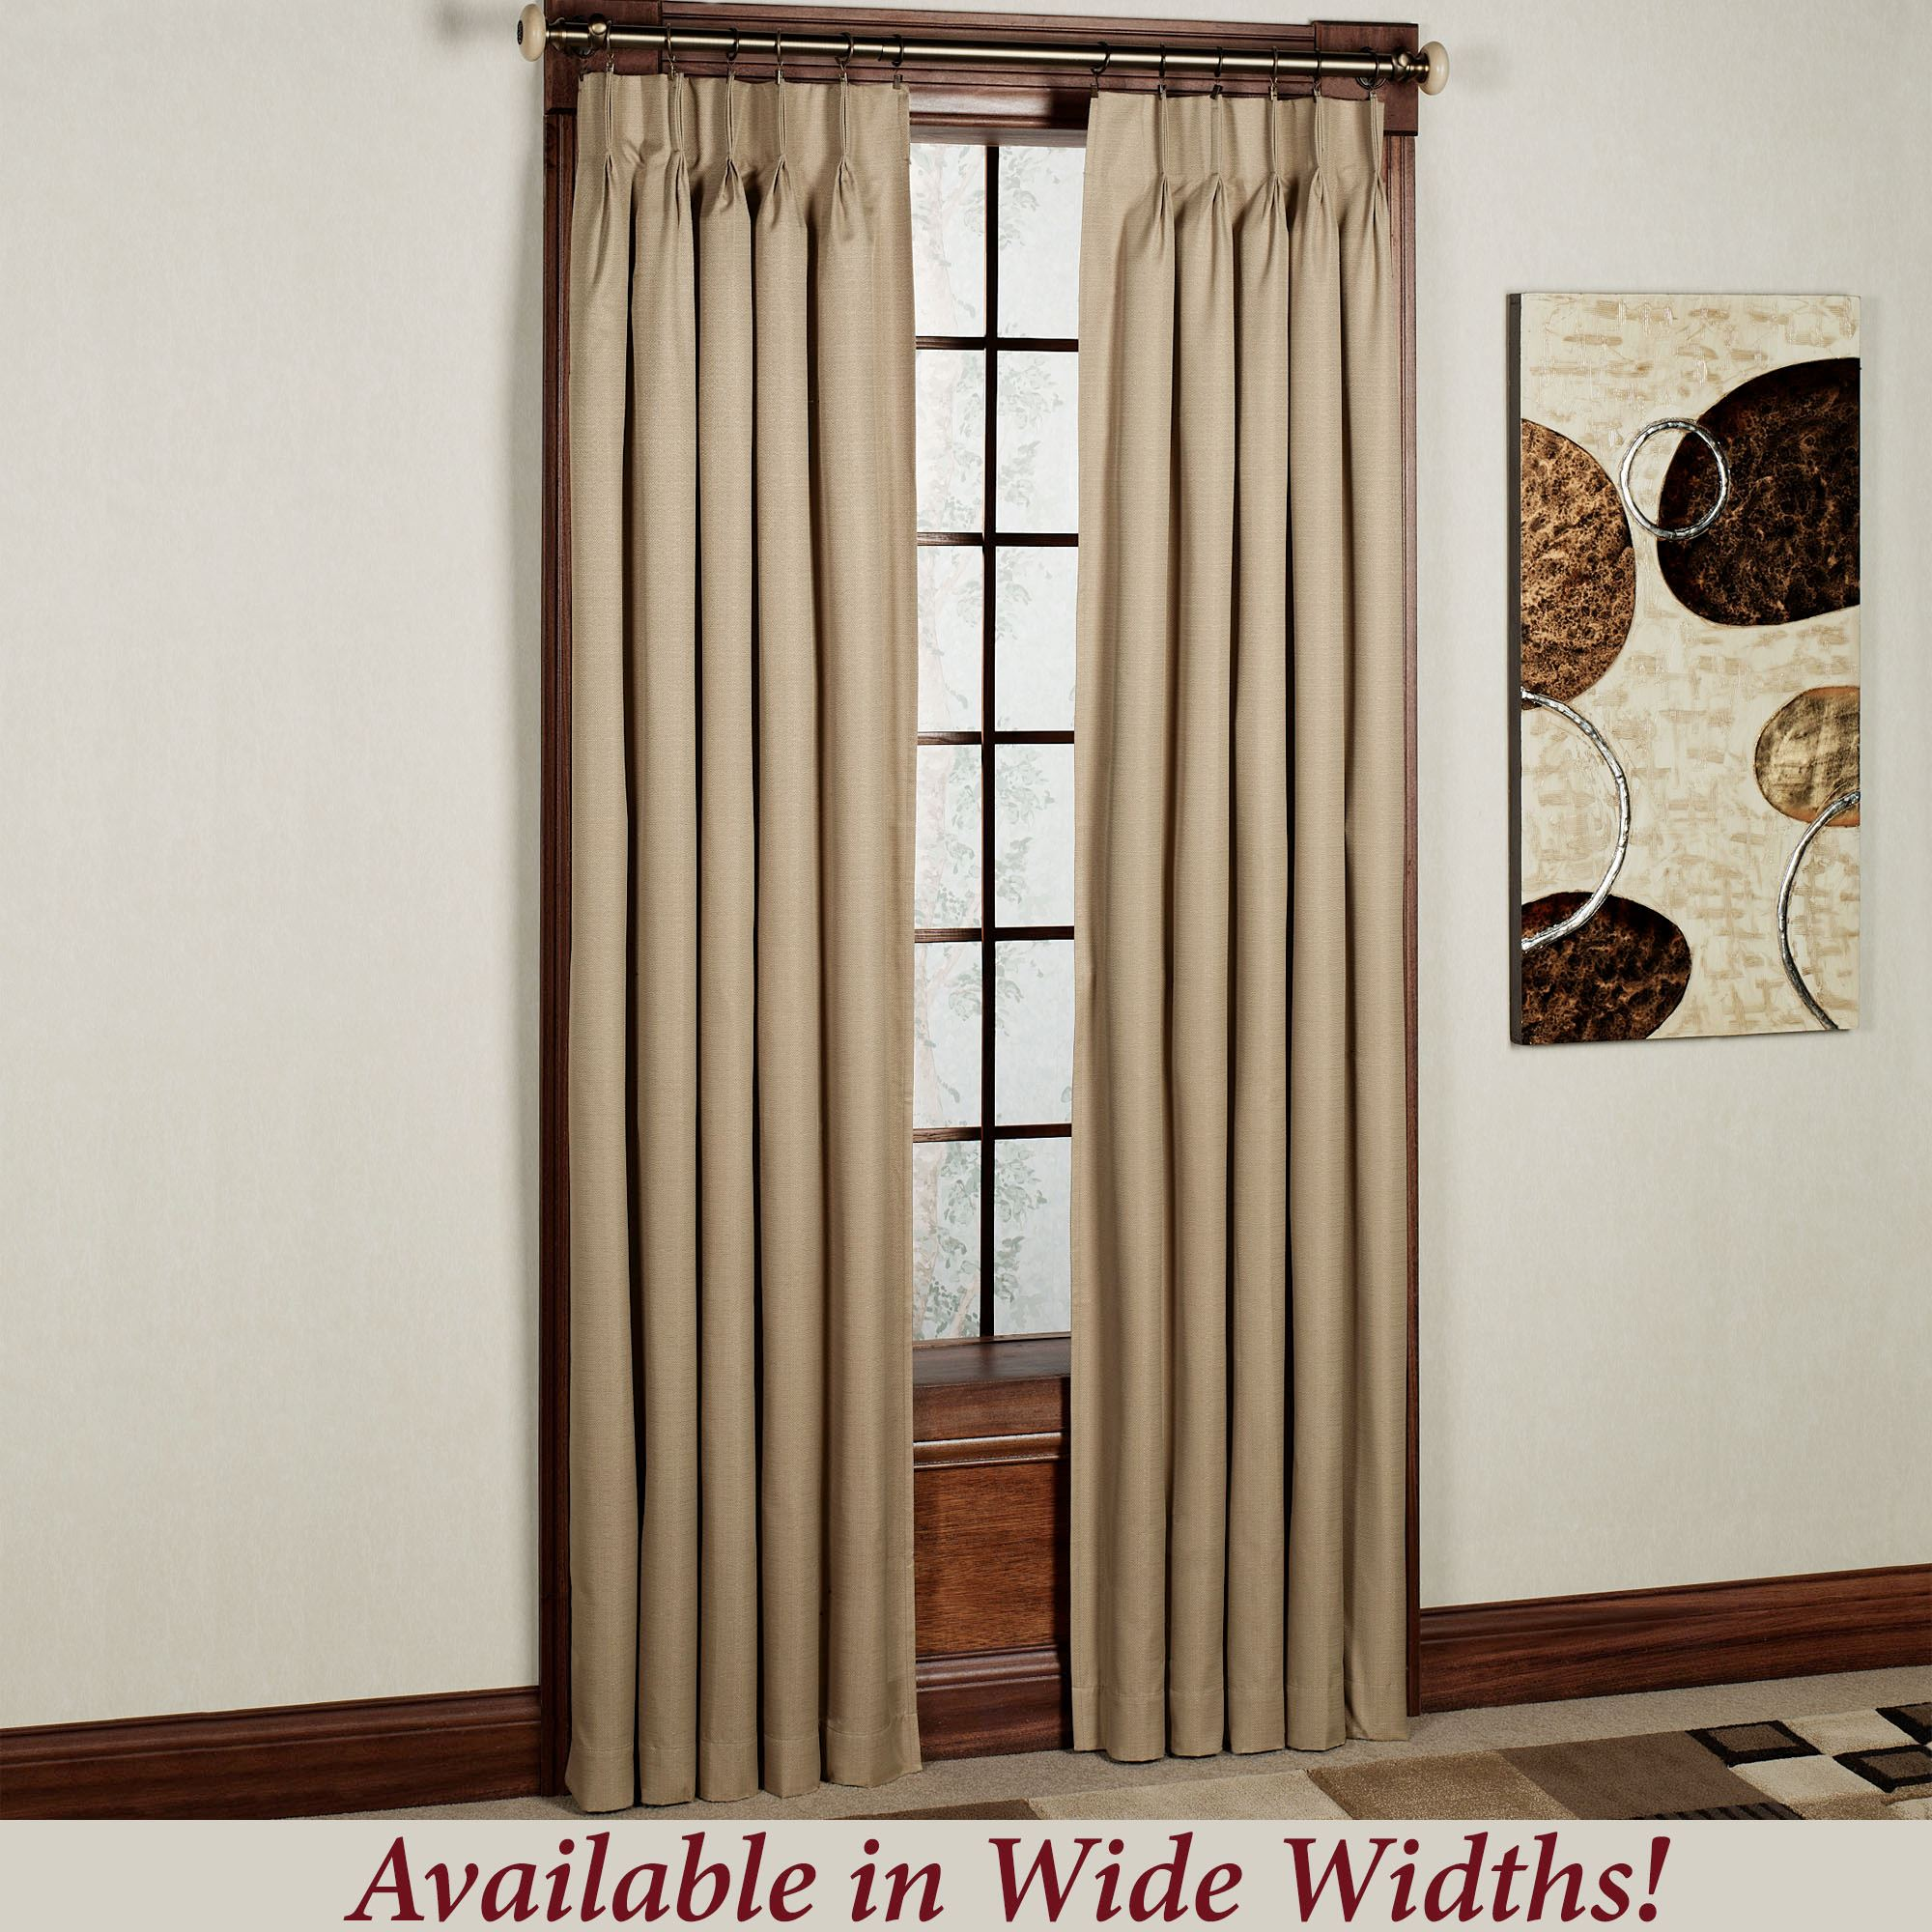 buy darkening collections curtains window leah online pair yellow d cor set curtain lush room large gray